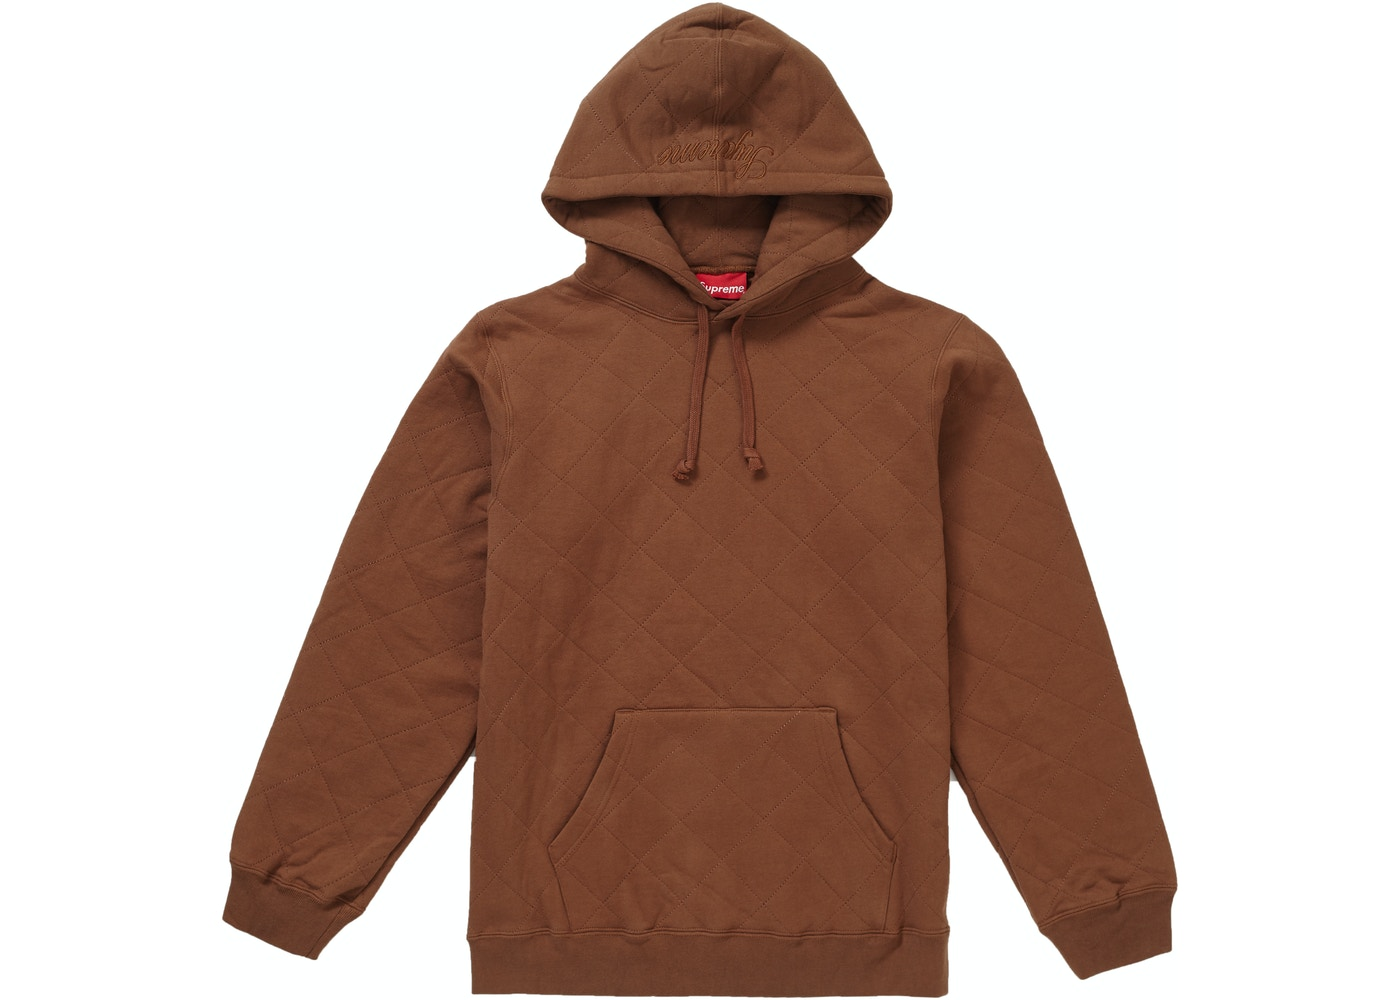 ca4f41181 Supreme Quilted Hooded Sweatshirt Brown - FW18